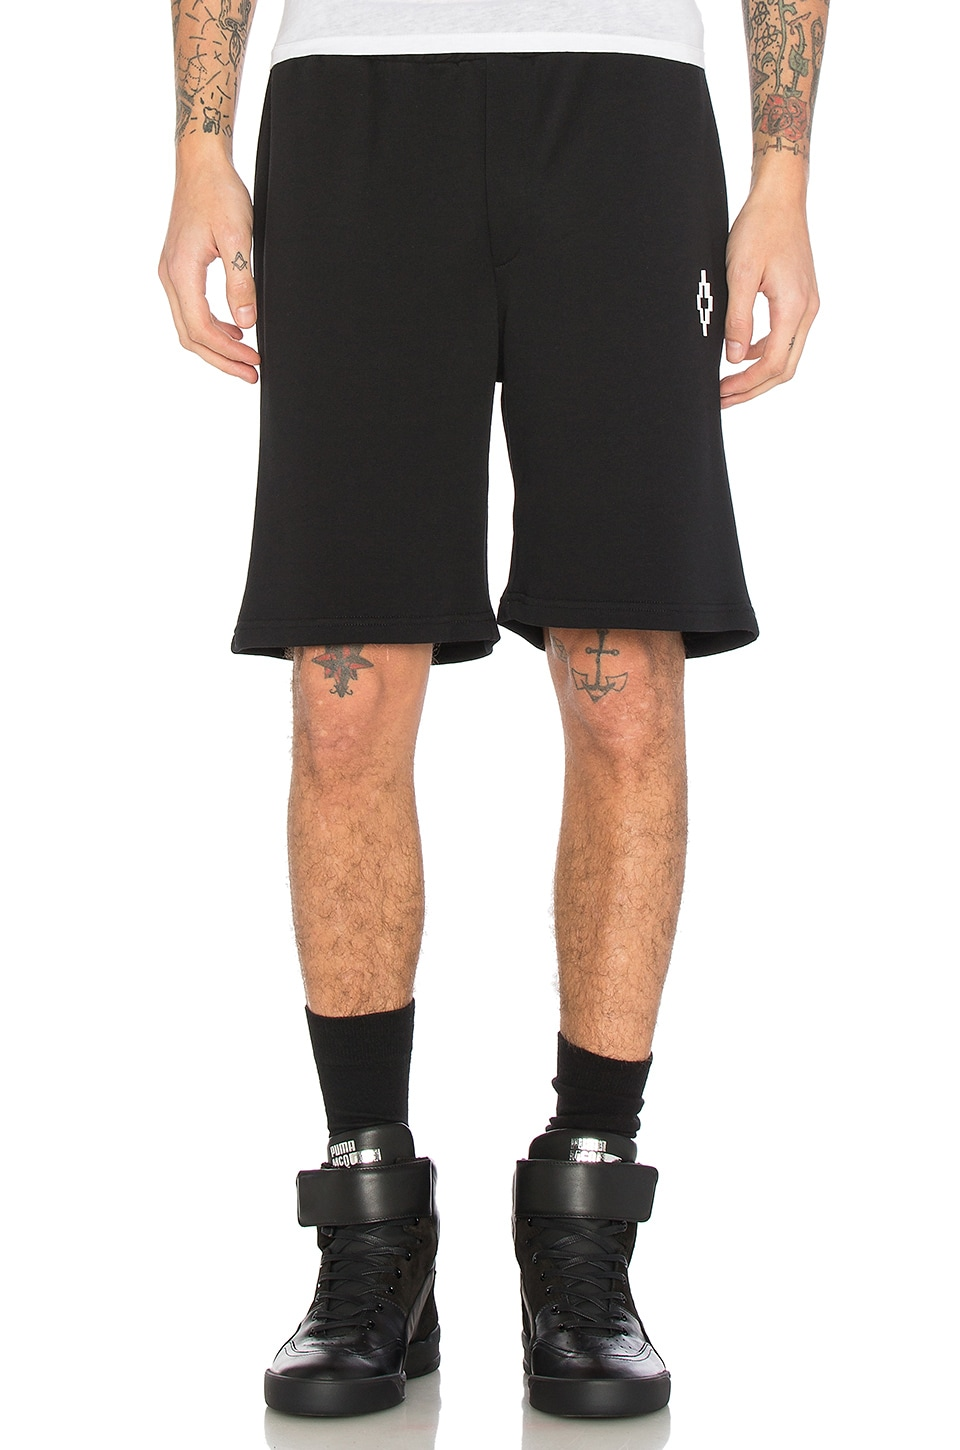 Paco Shorts by Marcelo Burlon